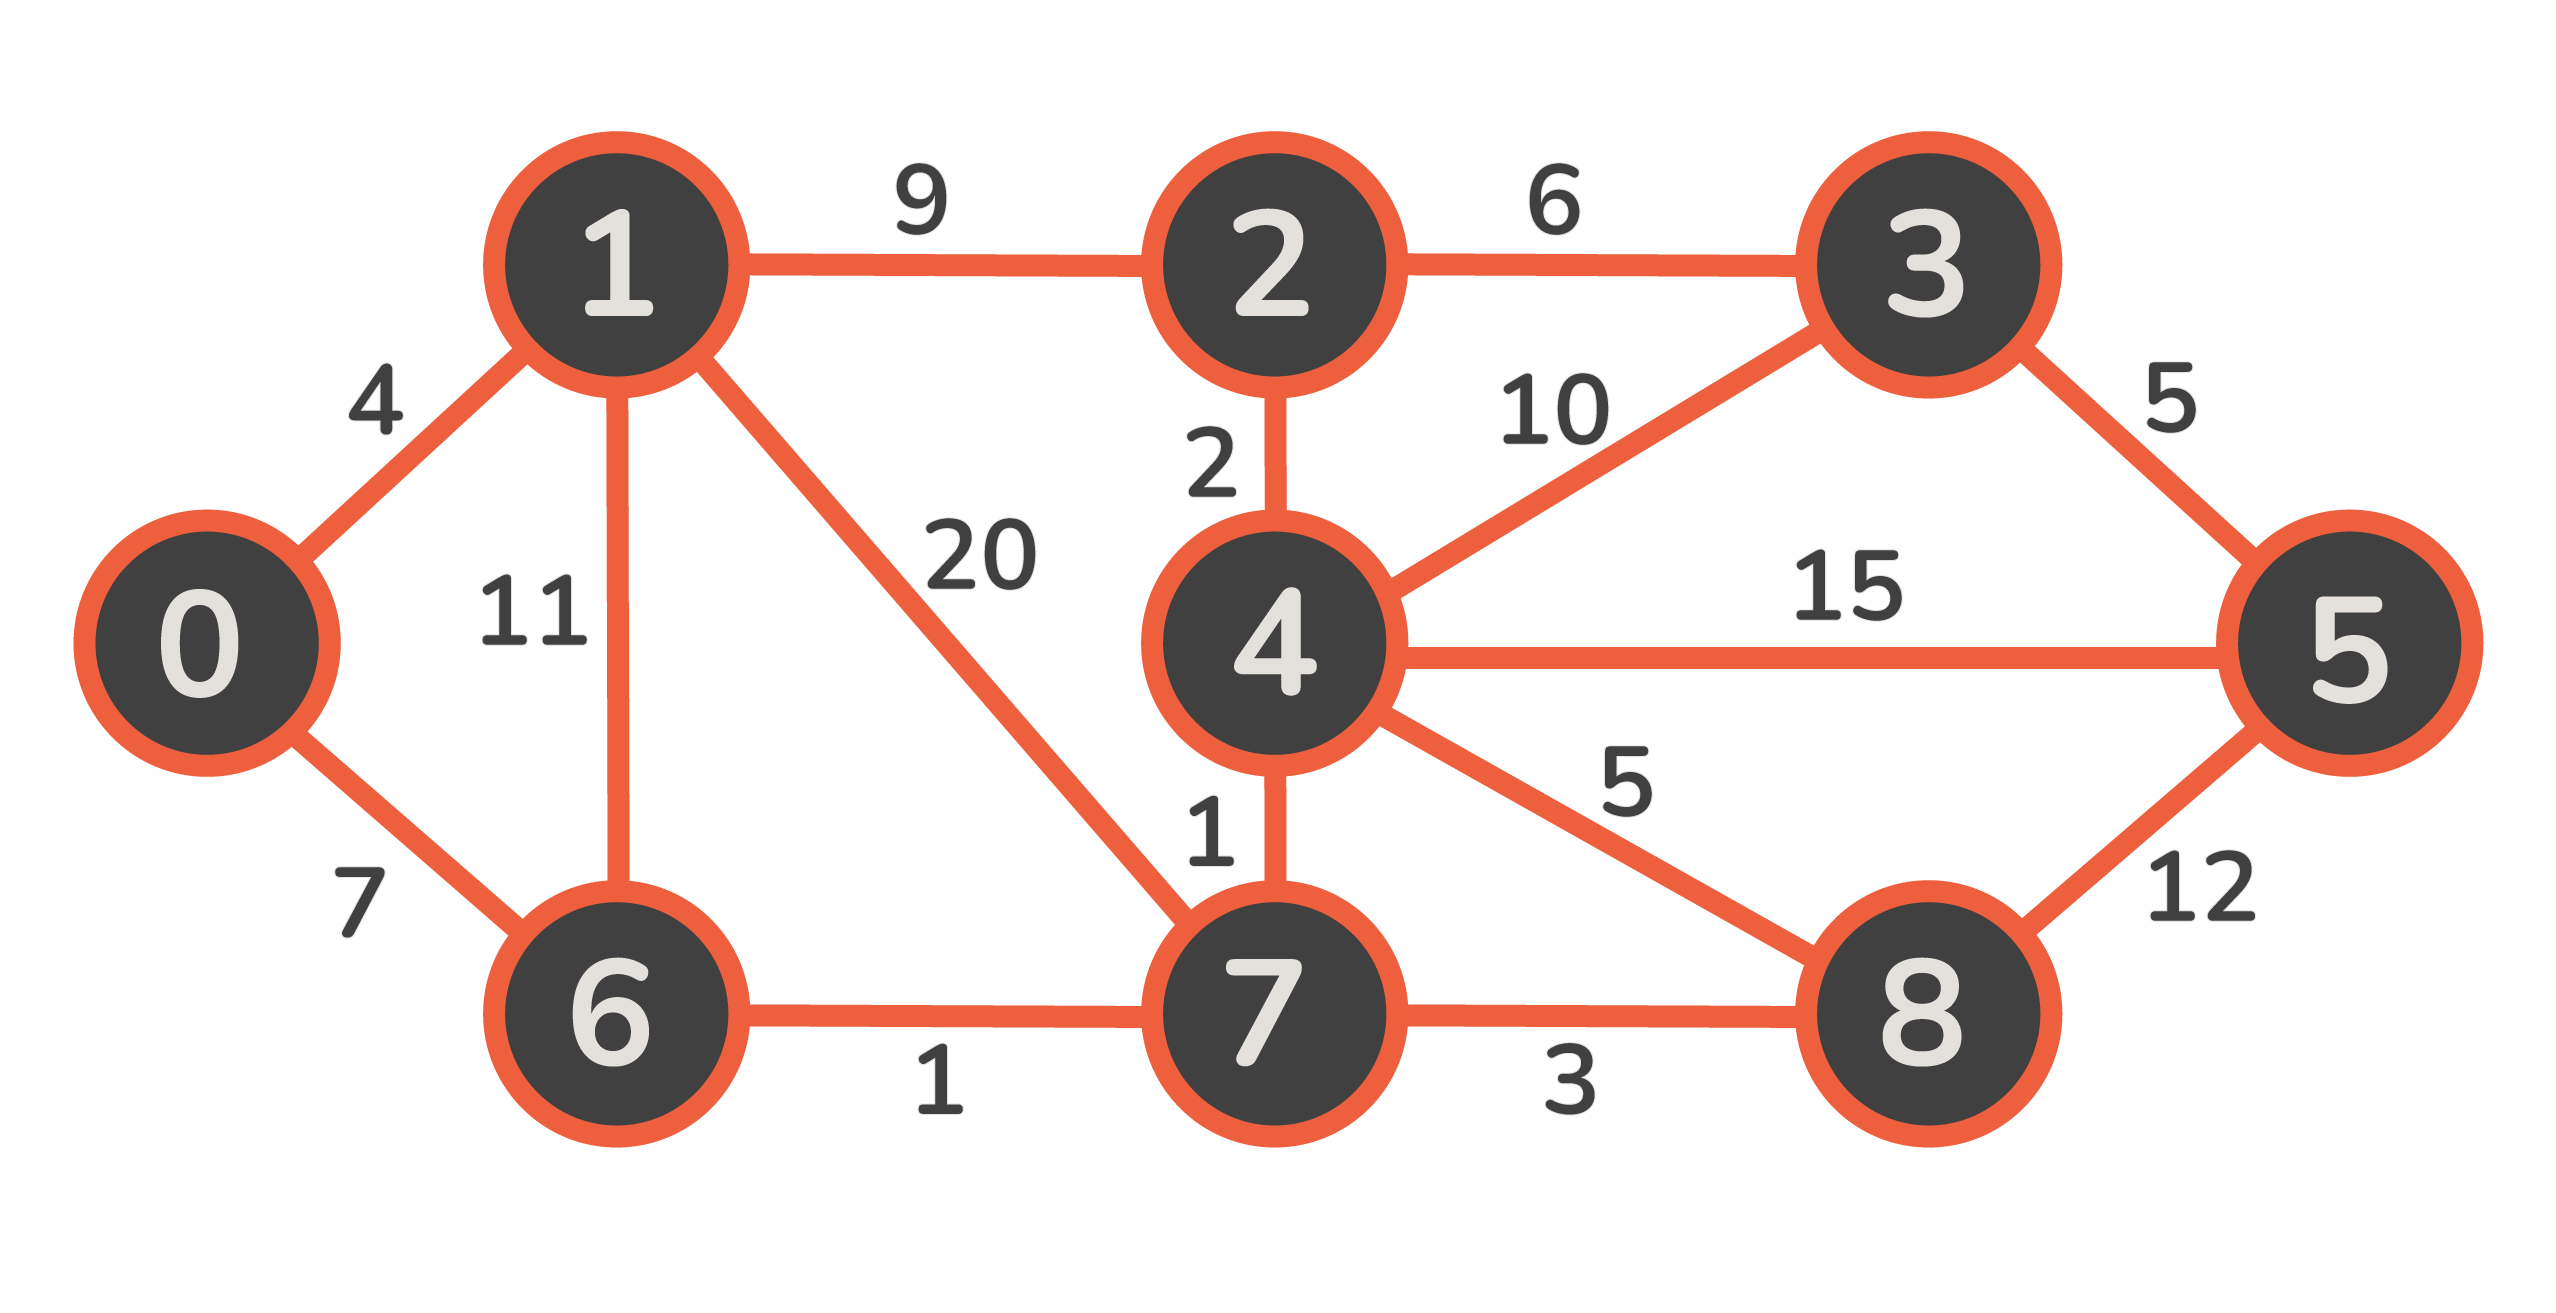 minimum spanning tree graph